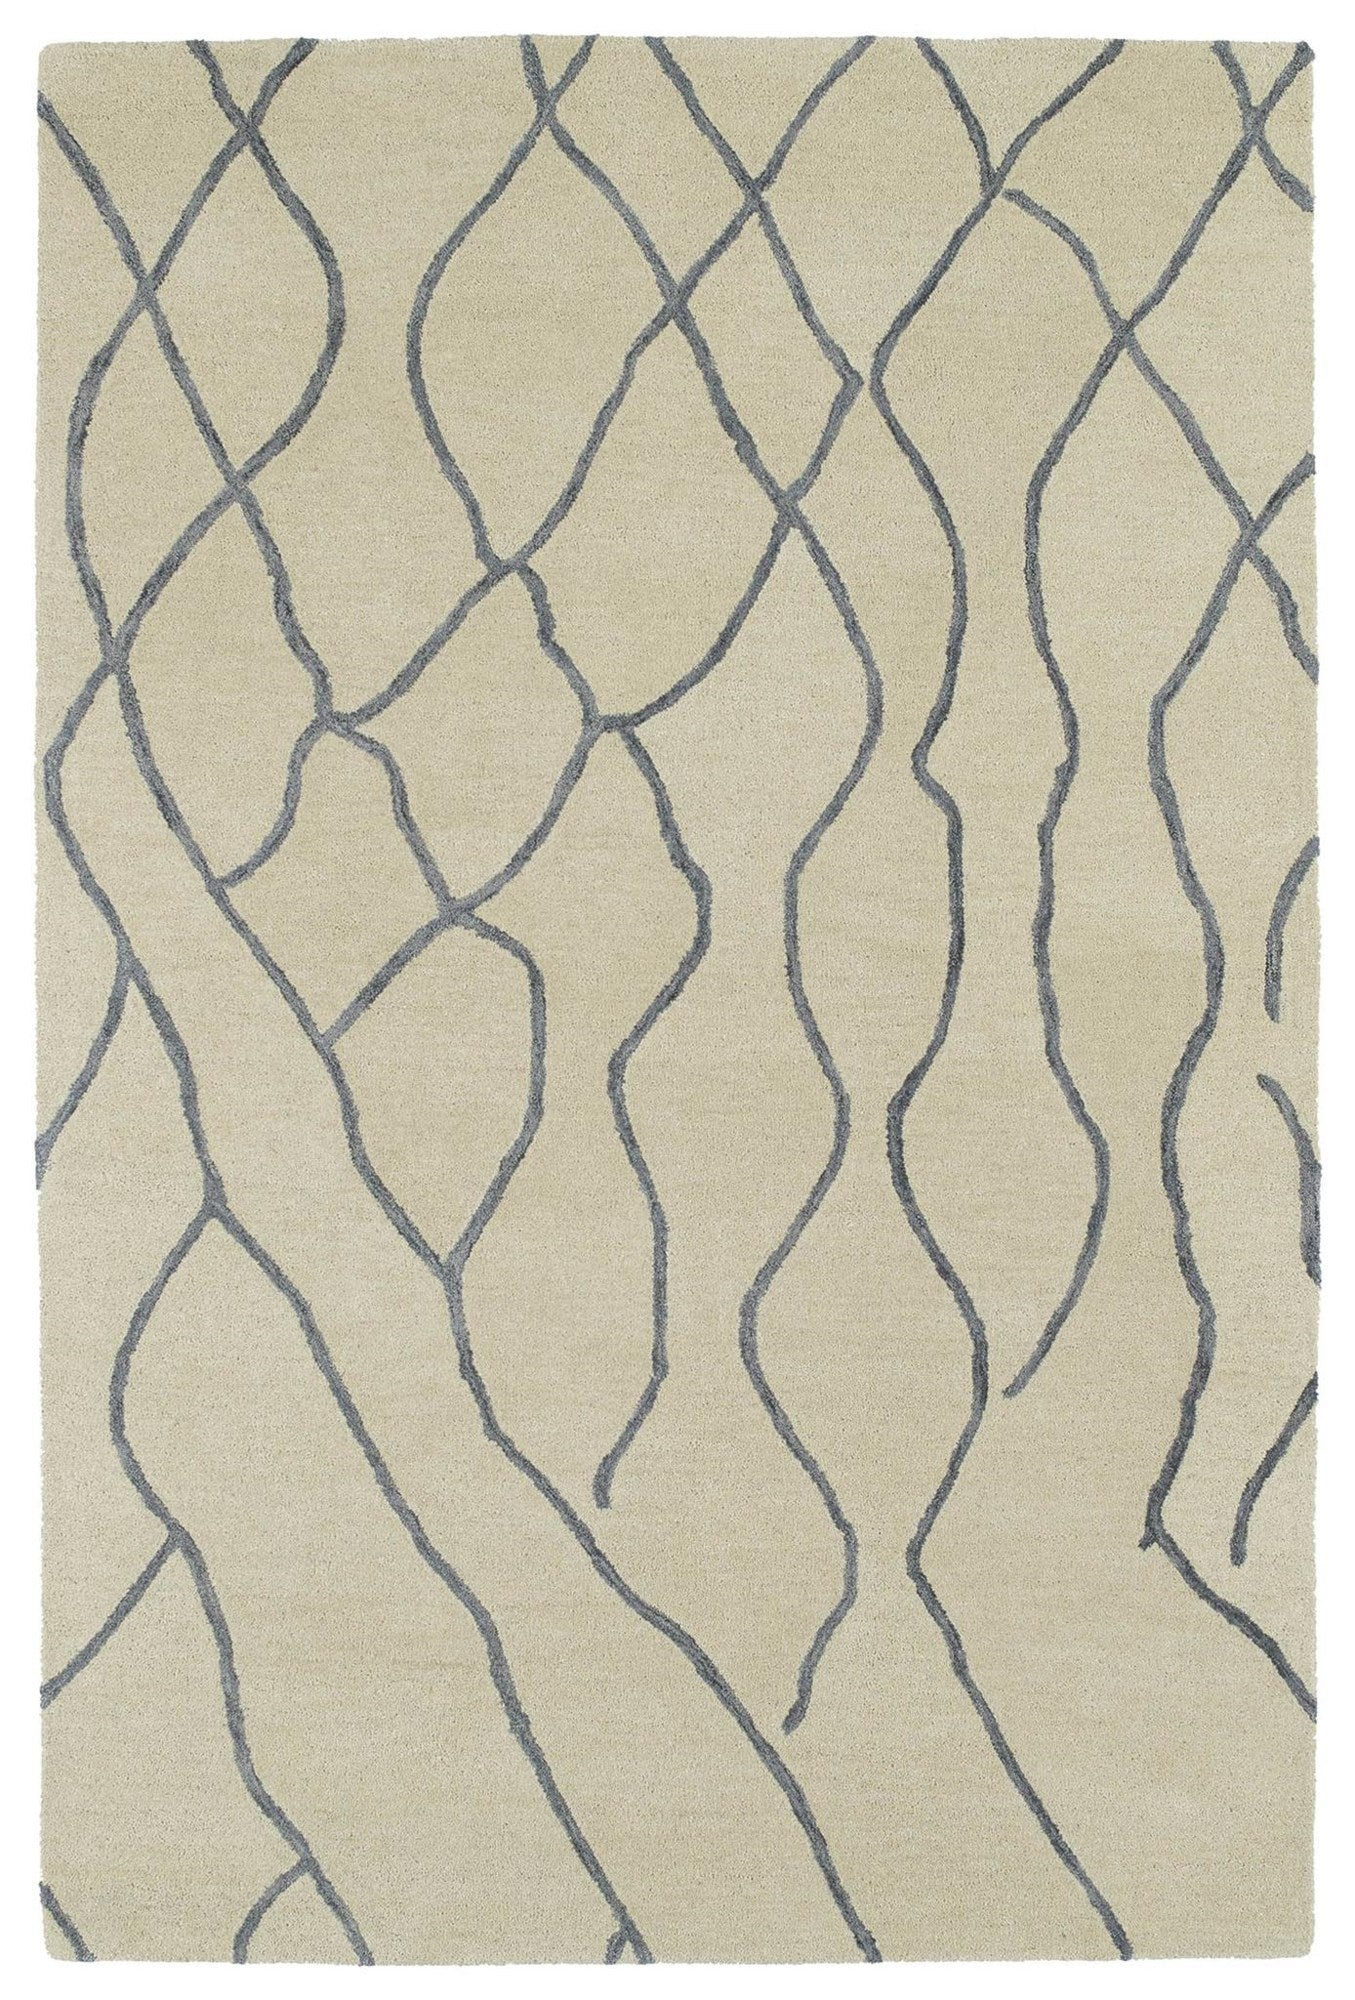 Calm Days - Hand-Tufted 100% Wool Rug